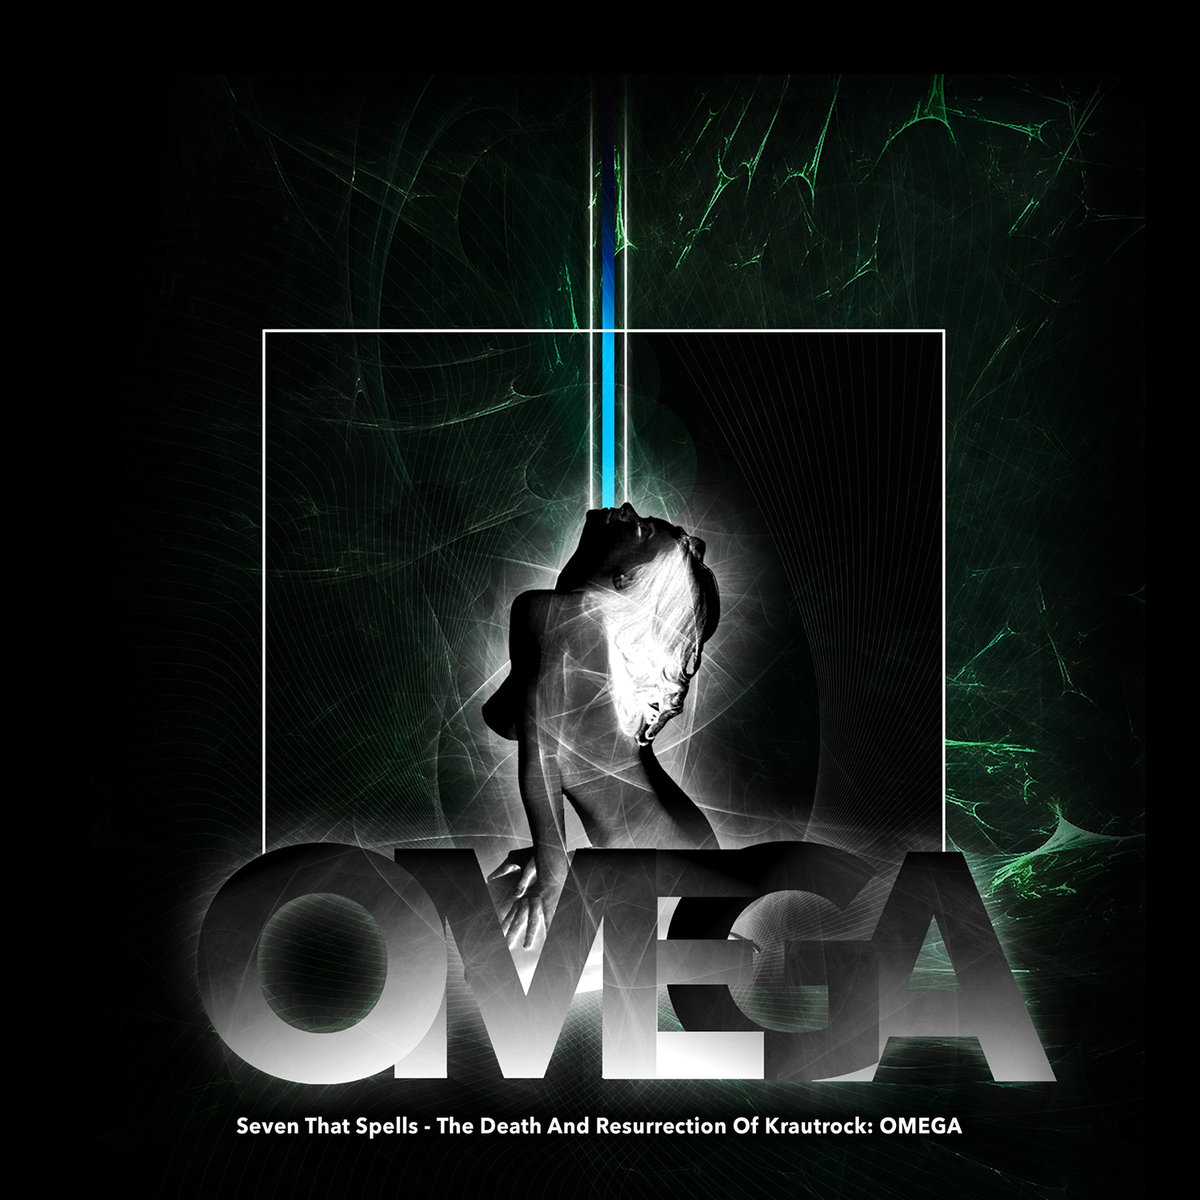 Seven That Spells - The Death And Resurrection Of Krautrock: OMEGA (2018)